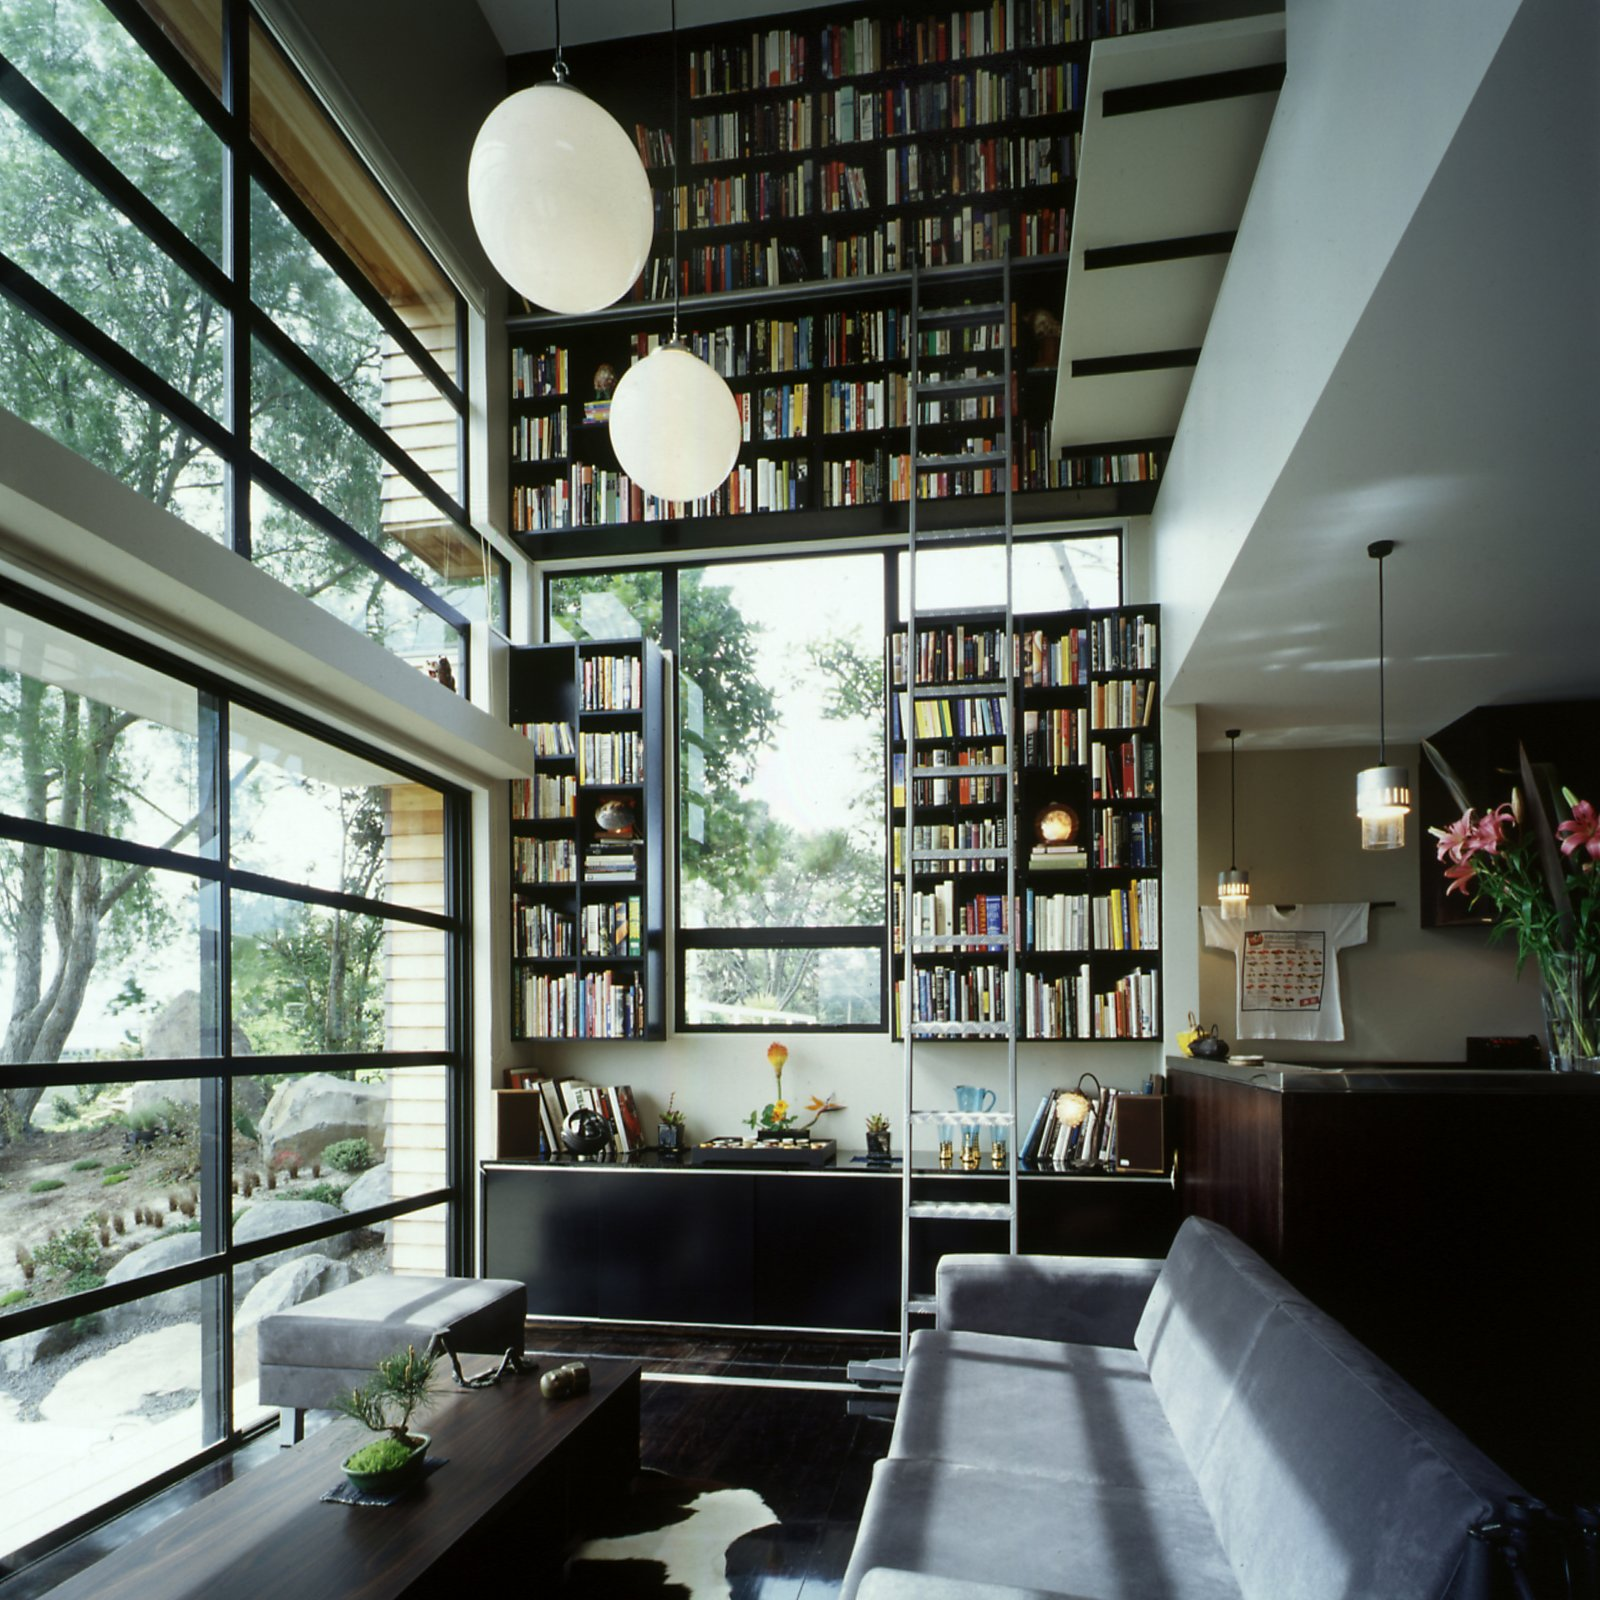 When architect Andrew Lister designed this wedge-shaped, Japanese-style house outside of Auckland for actor Yuri Kinugawa and film producter Owen Hughes, he wanted to make the interior feel larger than it was. The vertiginous two-story bookcase that takes up the entire northern wall of the living room draws the eye upwards, adding spacial impact without taking up any floor space.  Gigantic Home Libraries by William Harrison